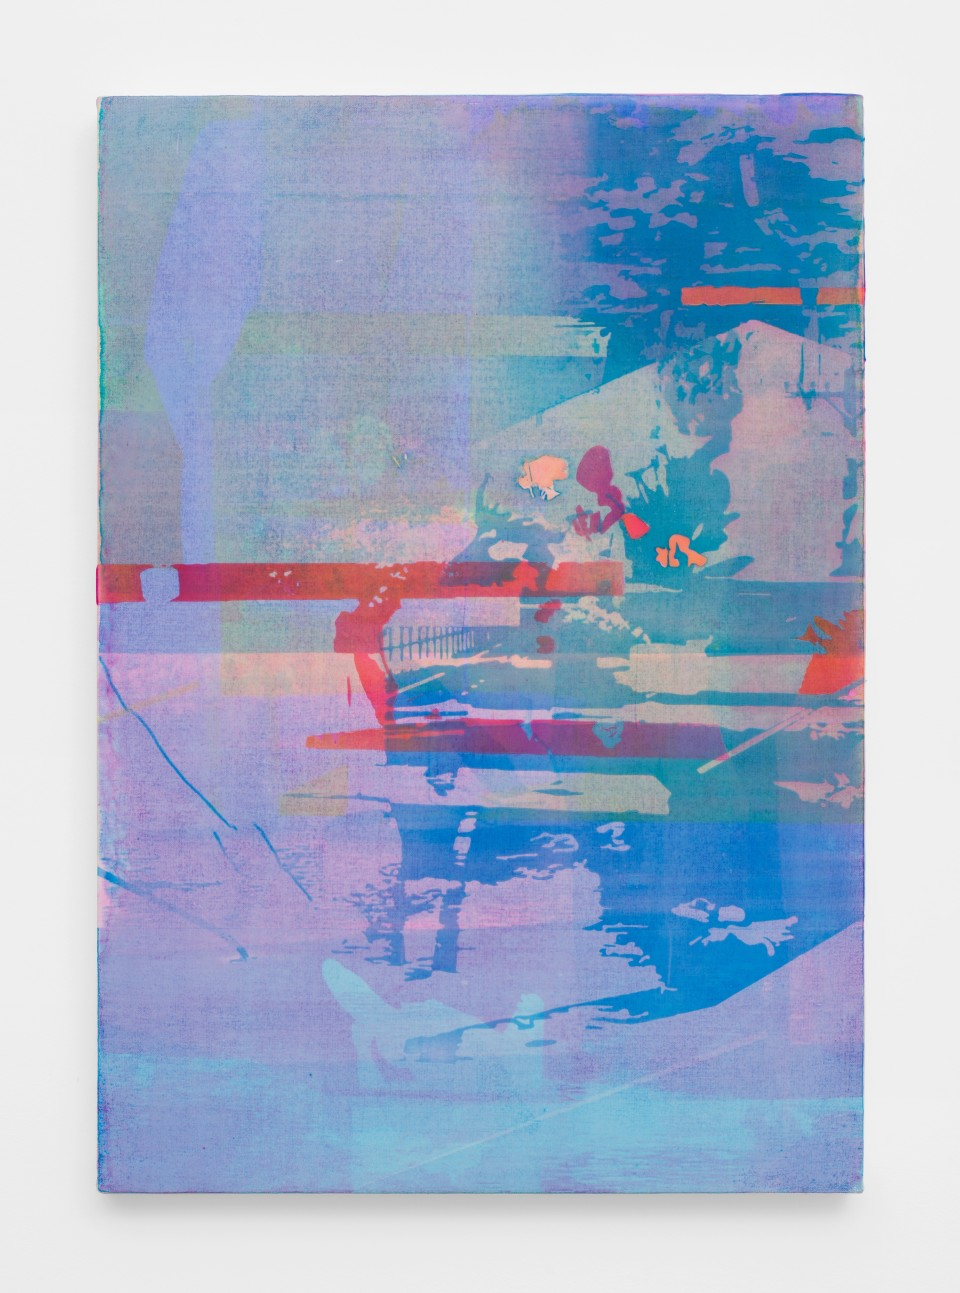 Image: Zoe Walsh  Trepidations, 2020  signed and dated verso  acrylic on canvas-wrapped panel  28 1/2 x 20 inches (72.4 x 50.8 cm)